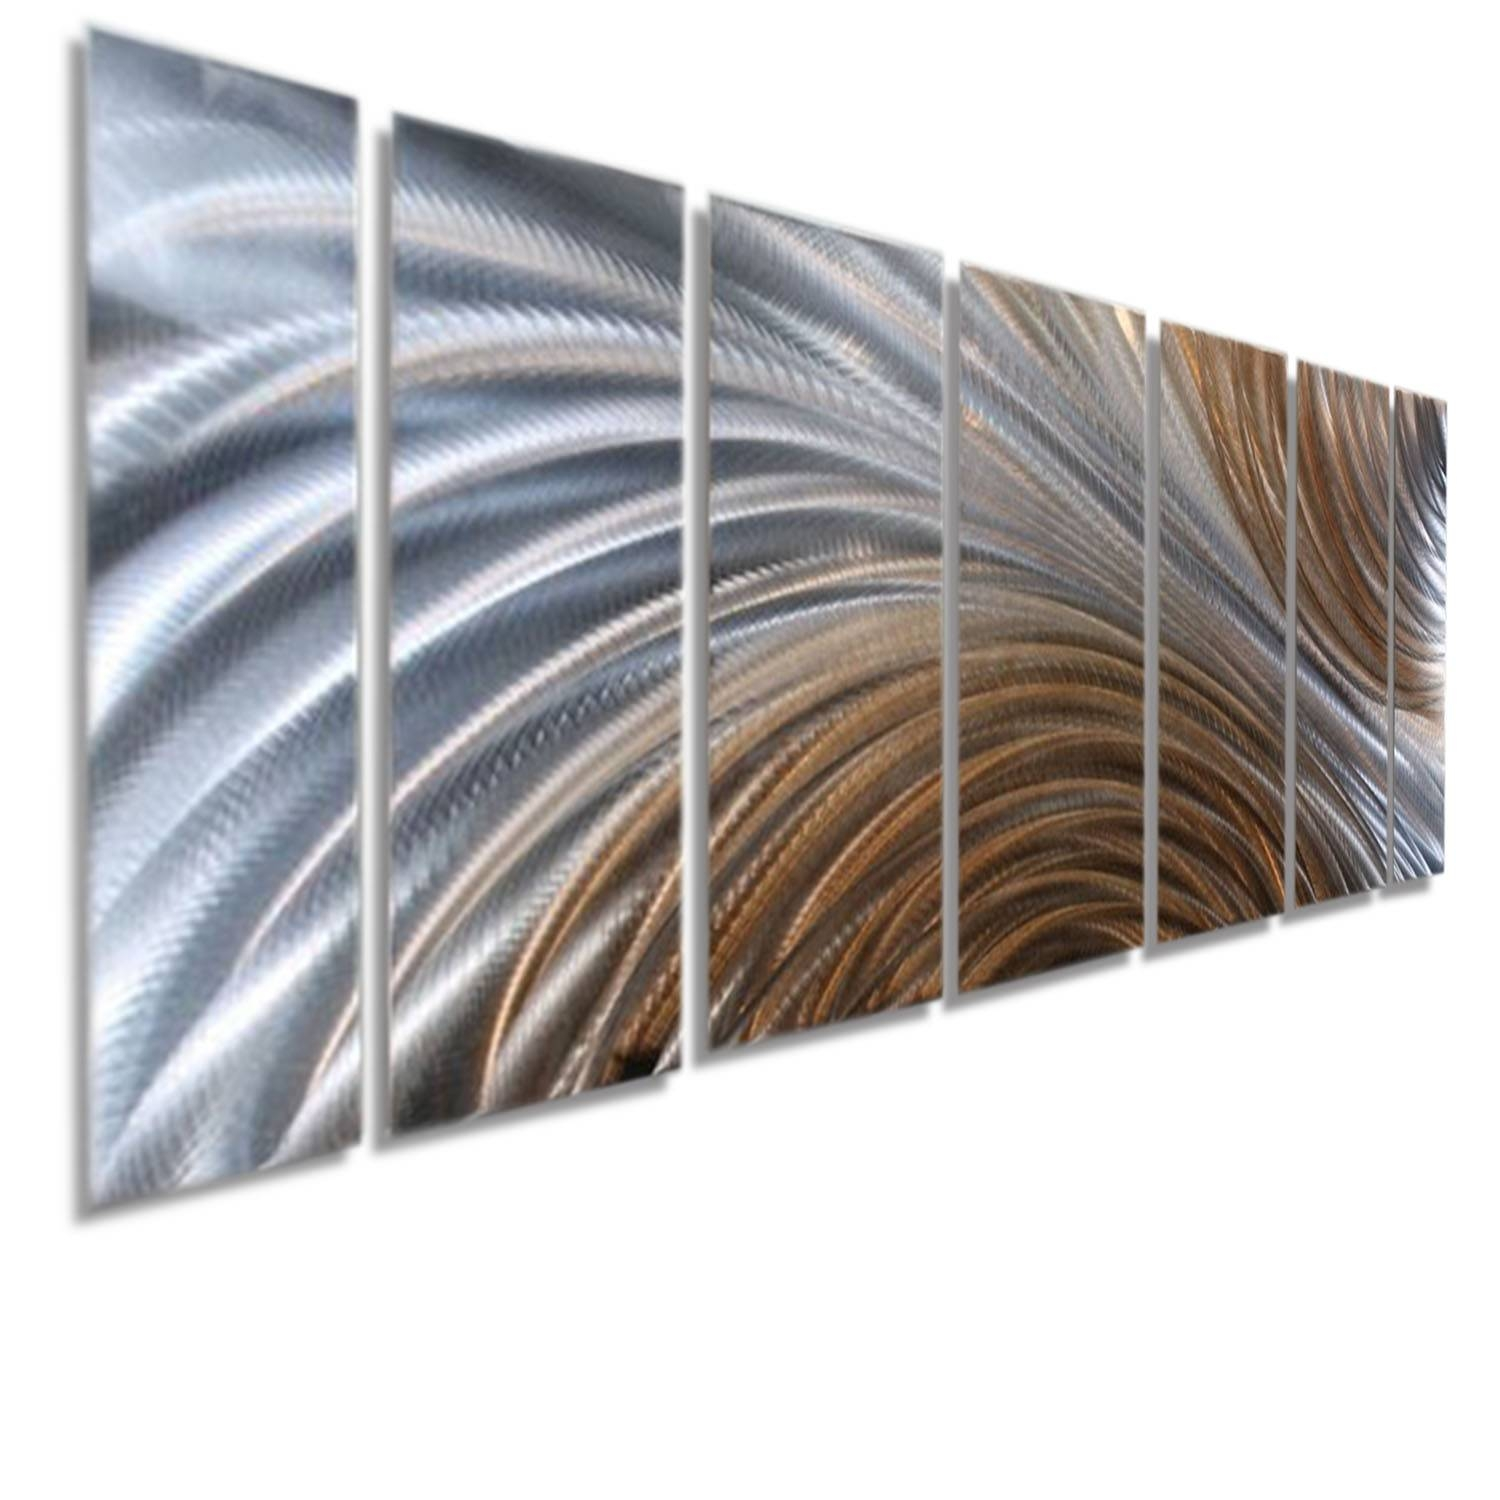 Amber Ascension Xl – Extra Large Silver & Copper Abstract Metal Pertaining To Most Recently Released Extra Large Metal Wall Art (View 5 of 20)